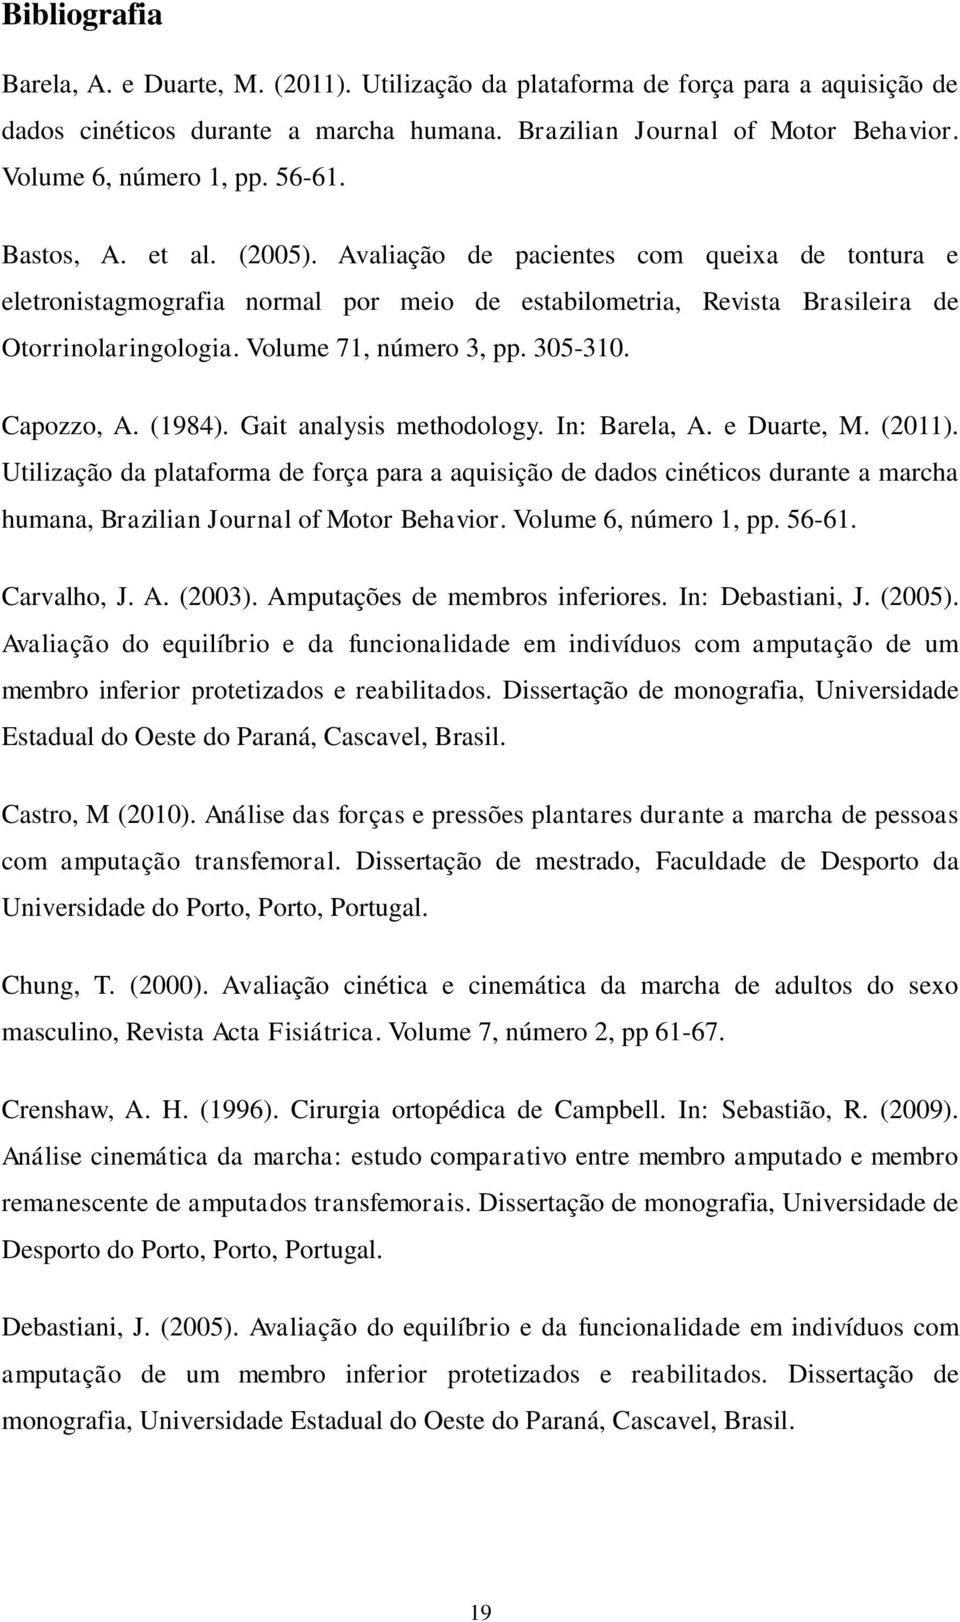 Volume 71, número 3, pp. 305-310. Capozzo, A. (1984). Gait analysis methodology. In: Barela, A. e Duarte, M. (2011).